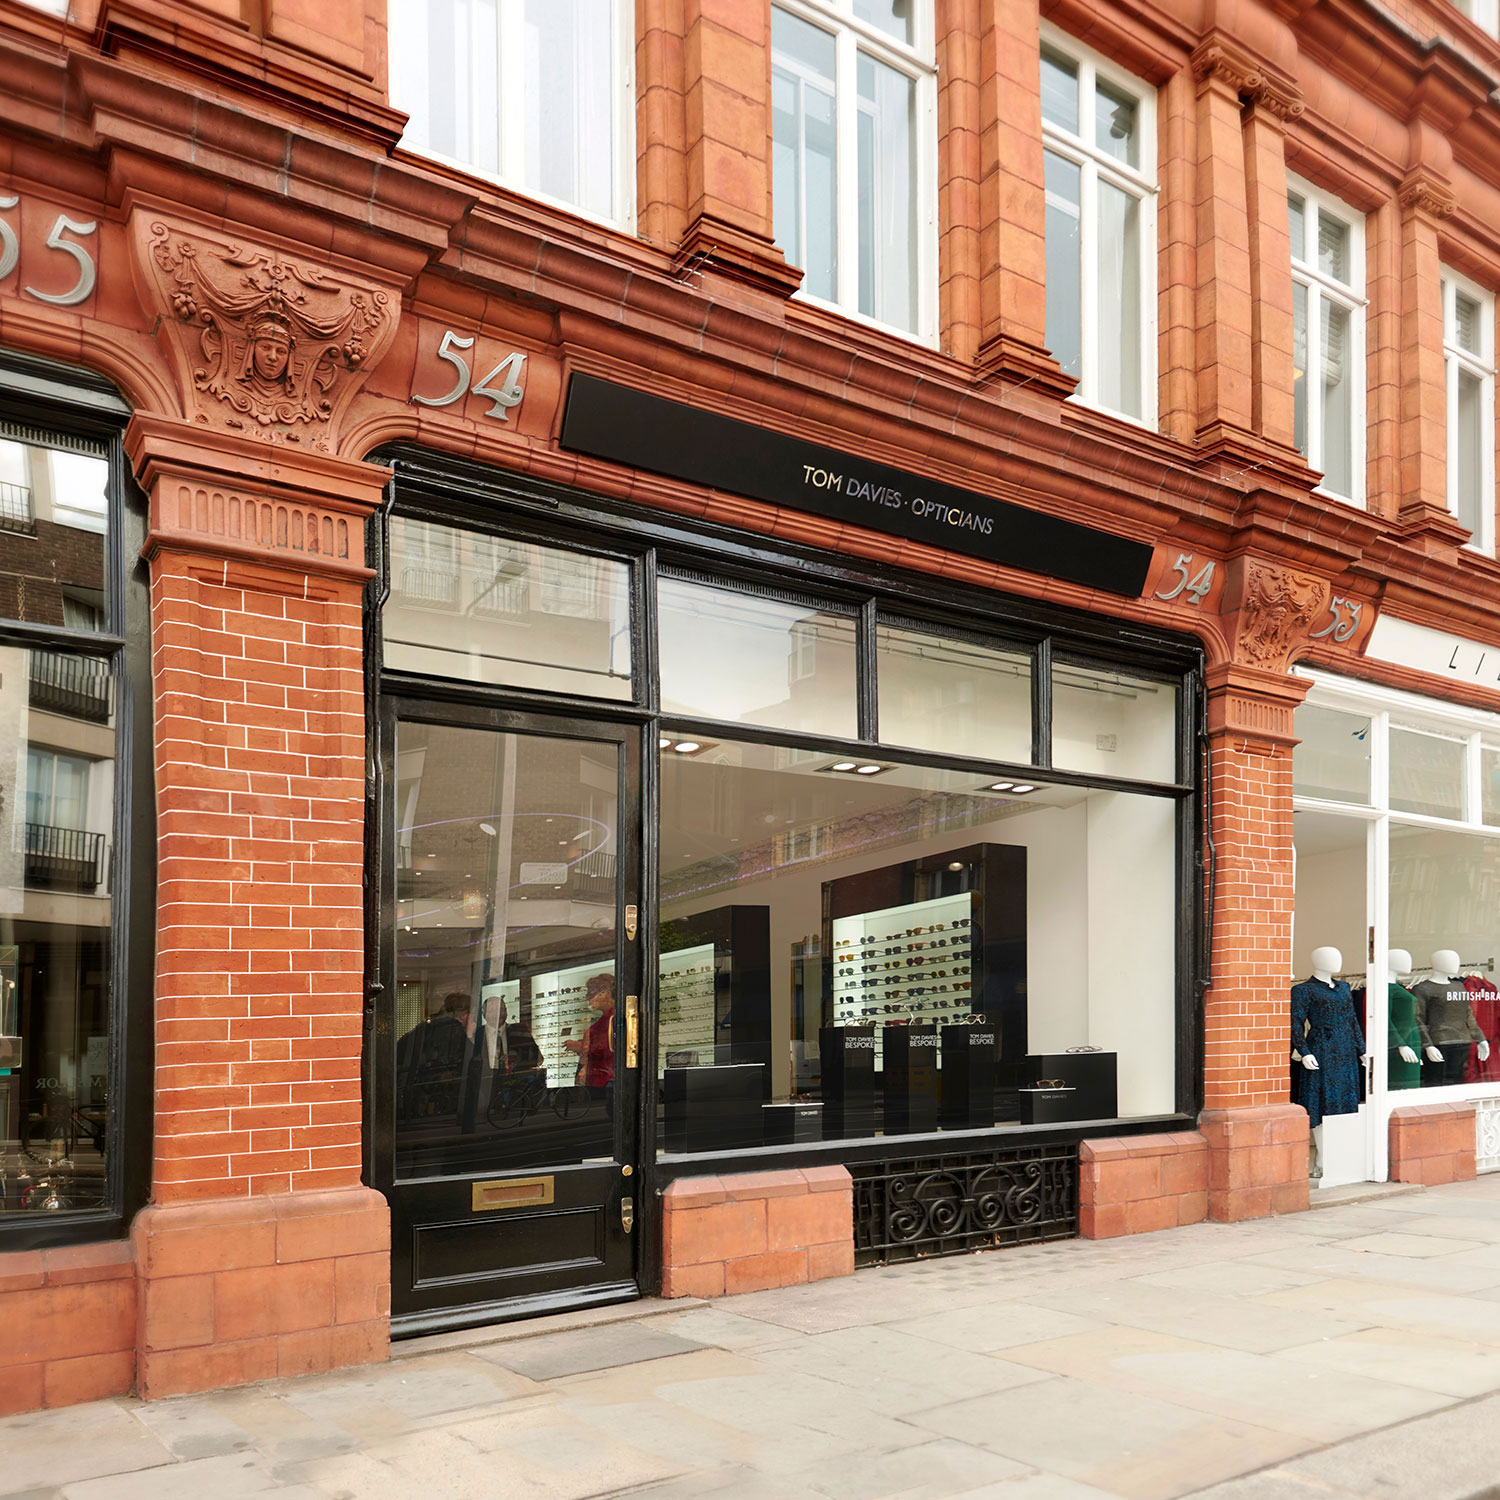 Tom Davies Bespoke Opticians in Sloane Square